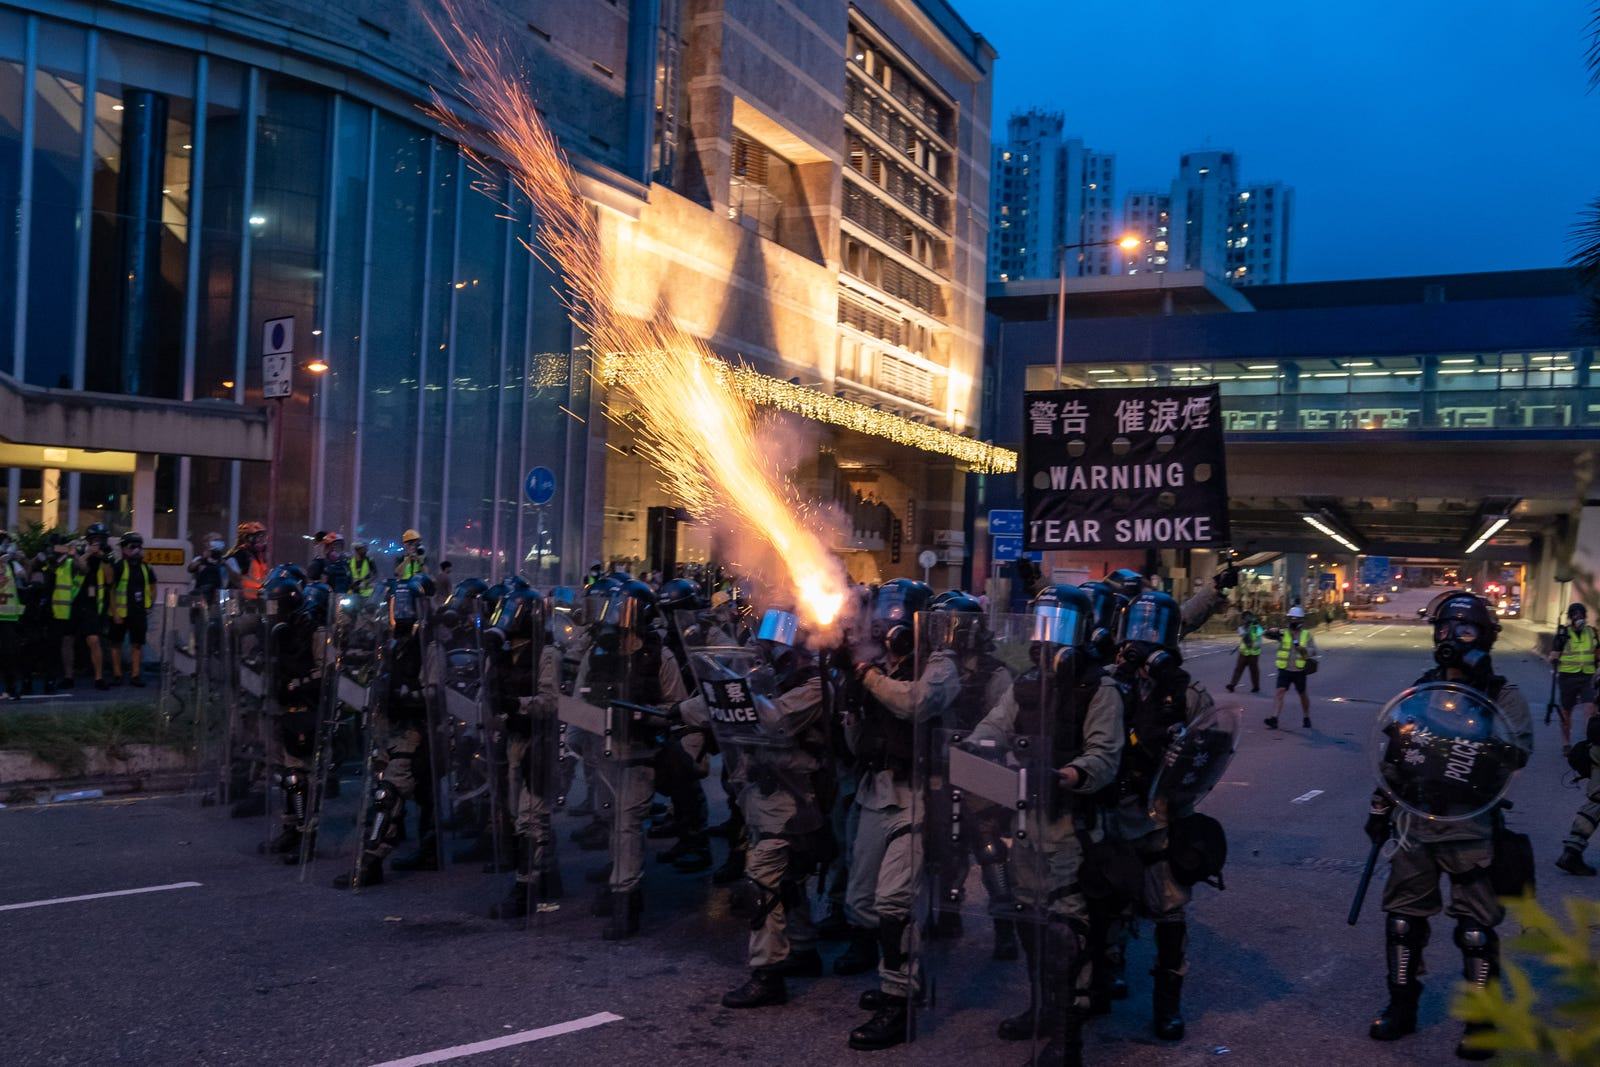 Riot police fire tear gas during a clearing at a demonstration in Tai Wan on August 10, 2019 in Hong Kong, China.